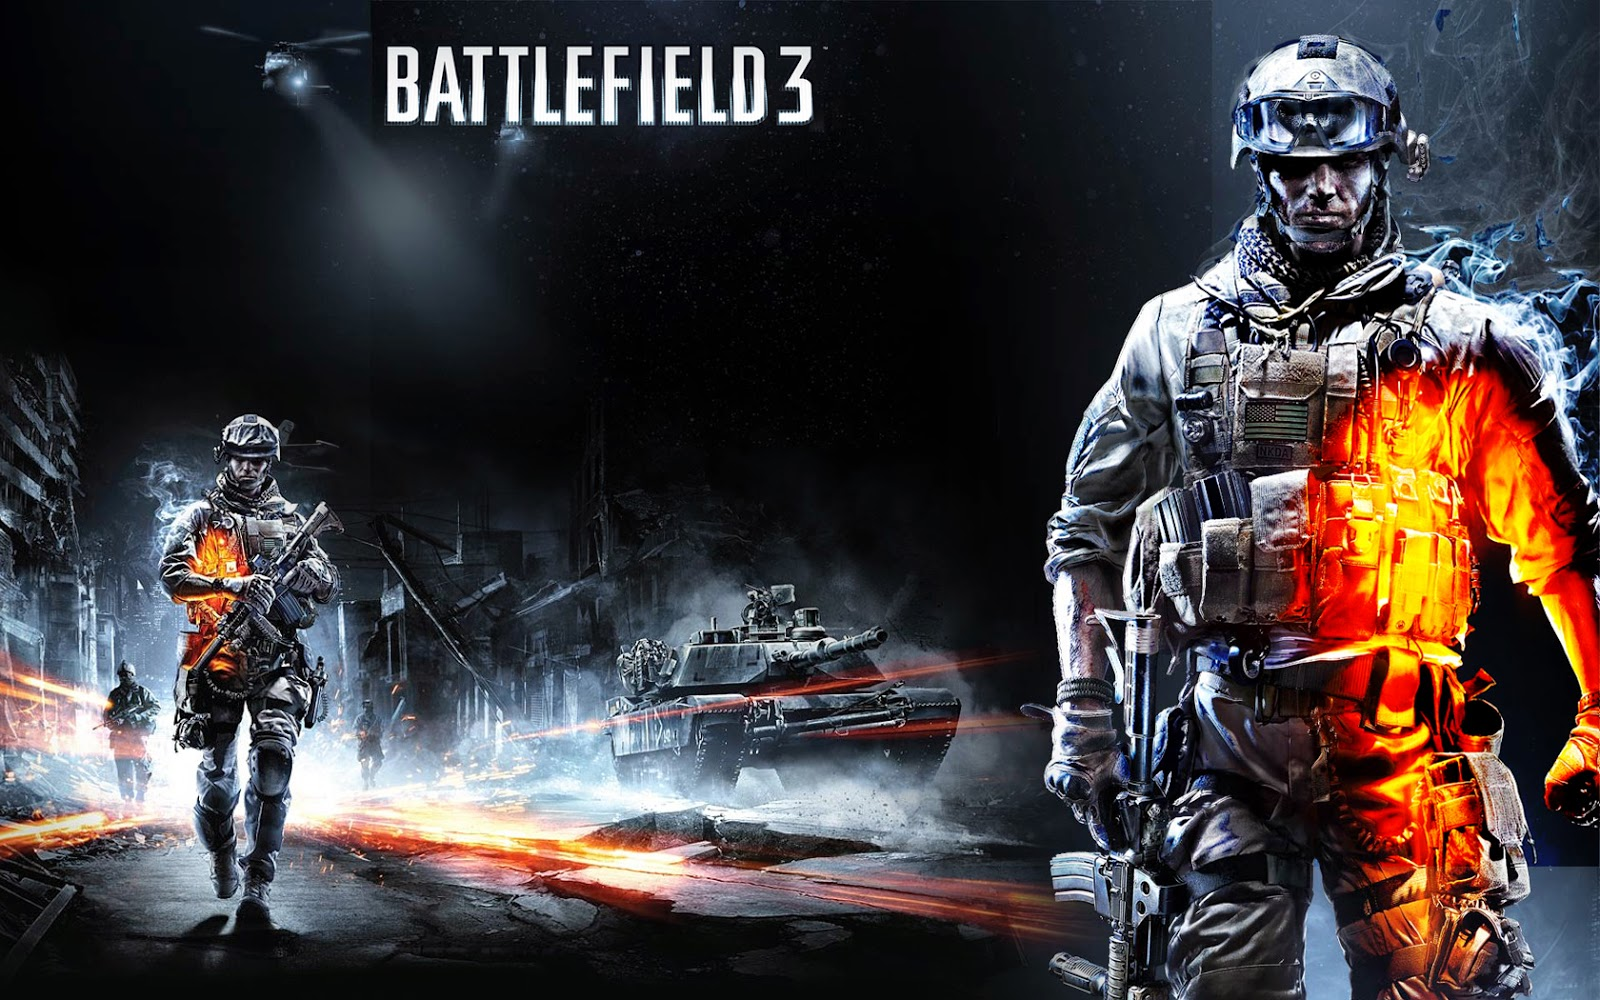 Download Wallpaper 1280x1280 Battlefield 4 Game Ea: Battlefield Android Game Free Download